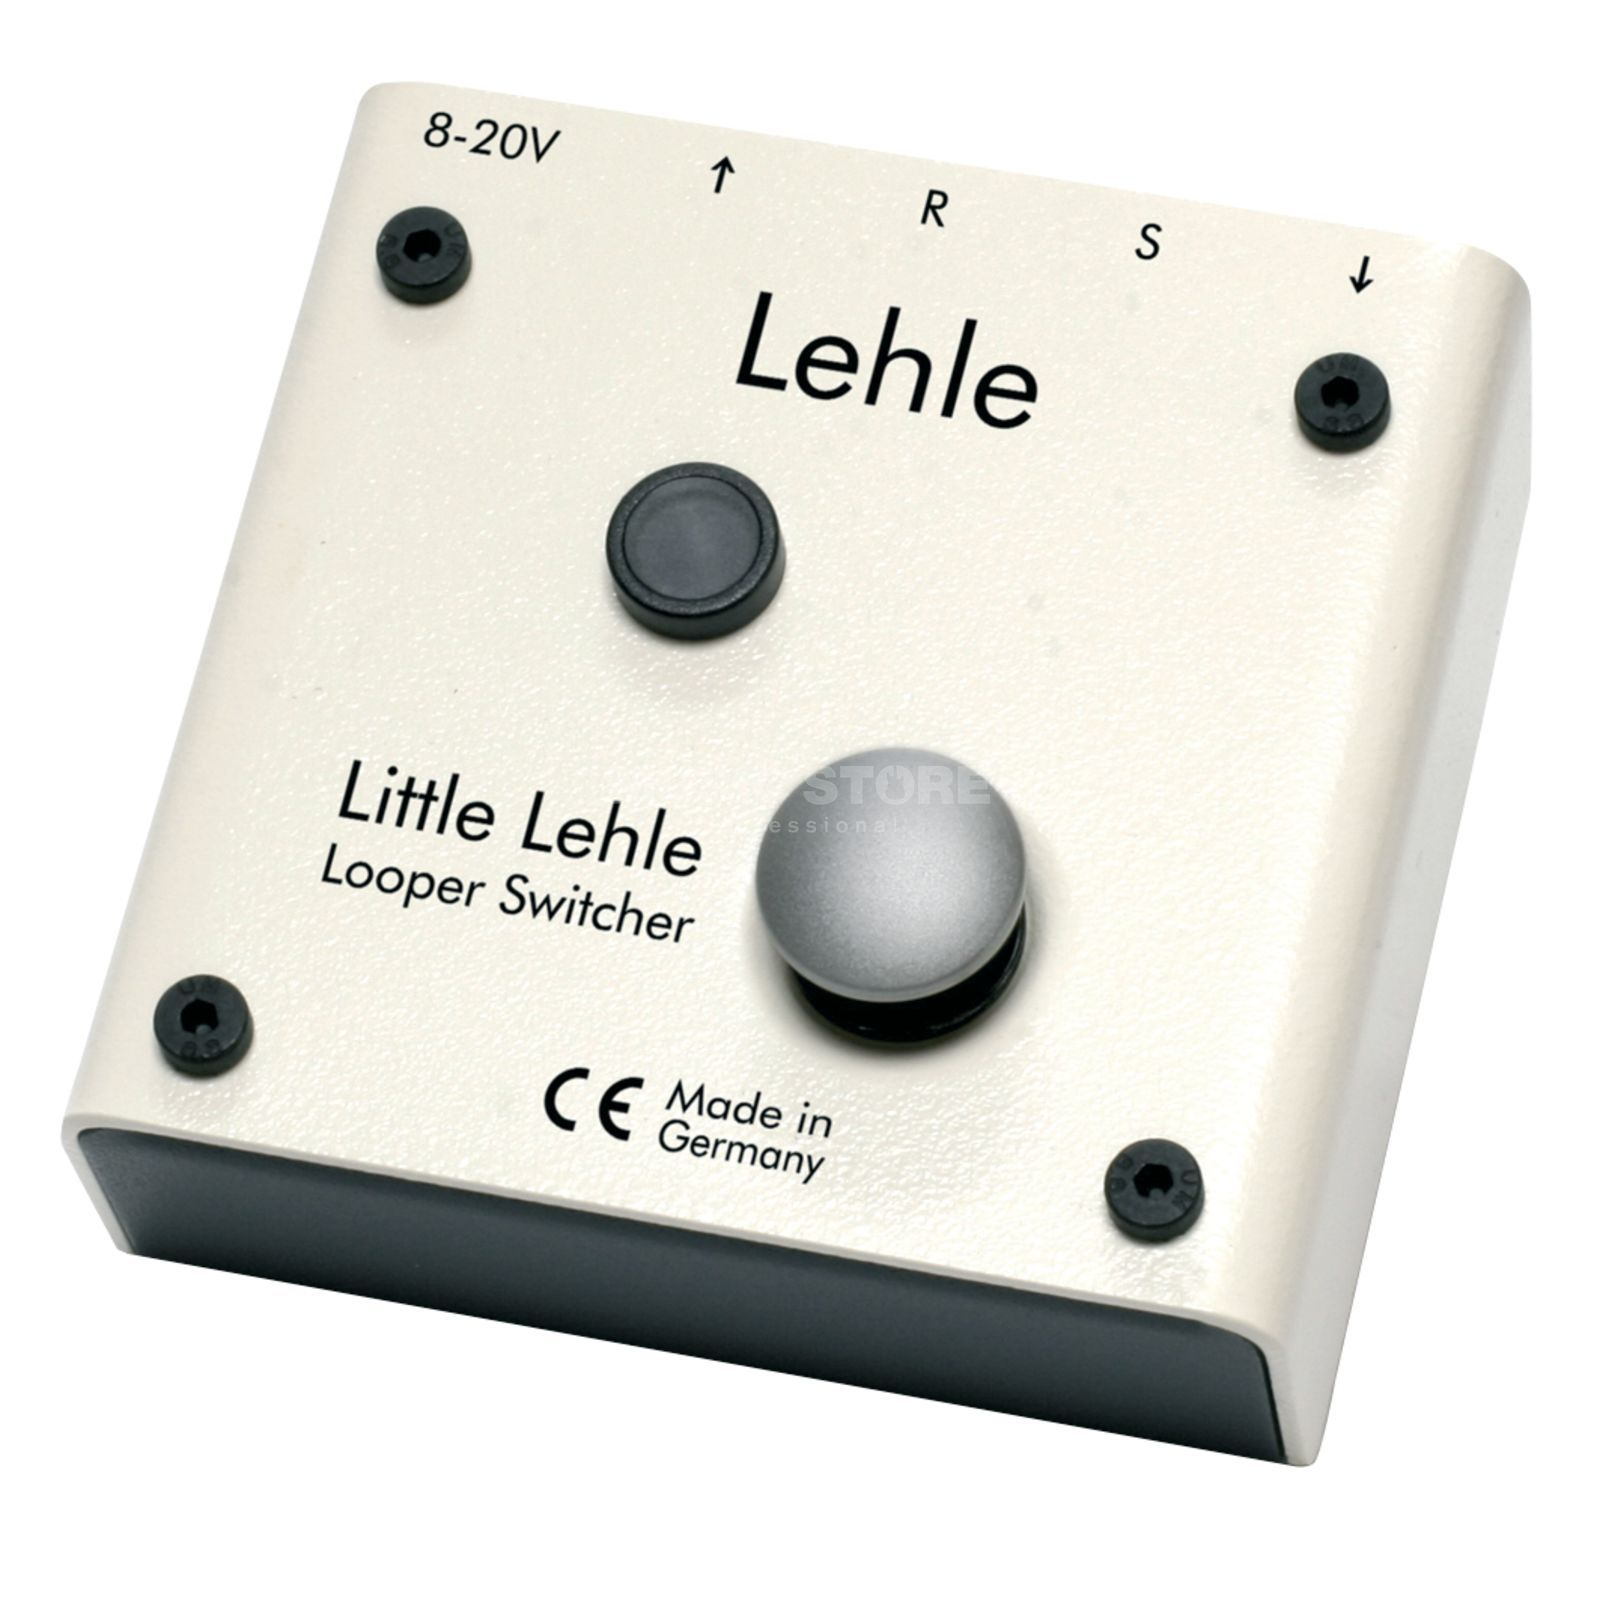 Lehle 1016 Little Lehle II Switcher Produktbild